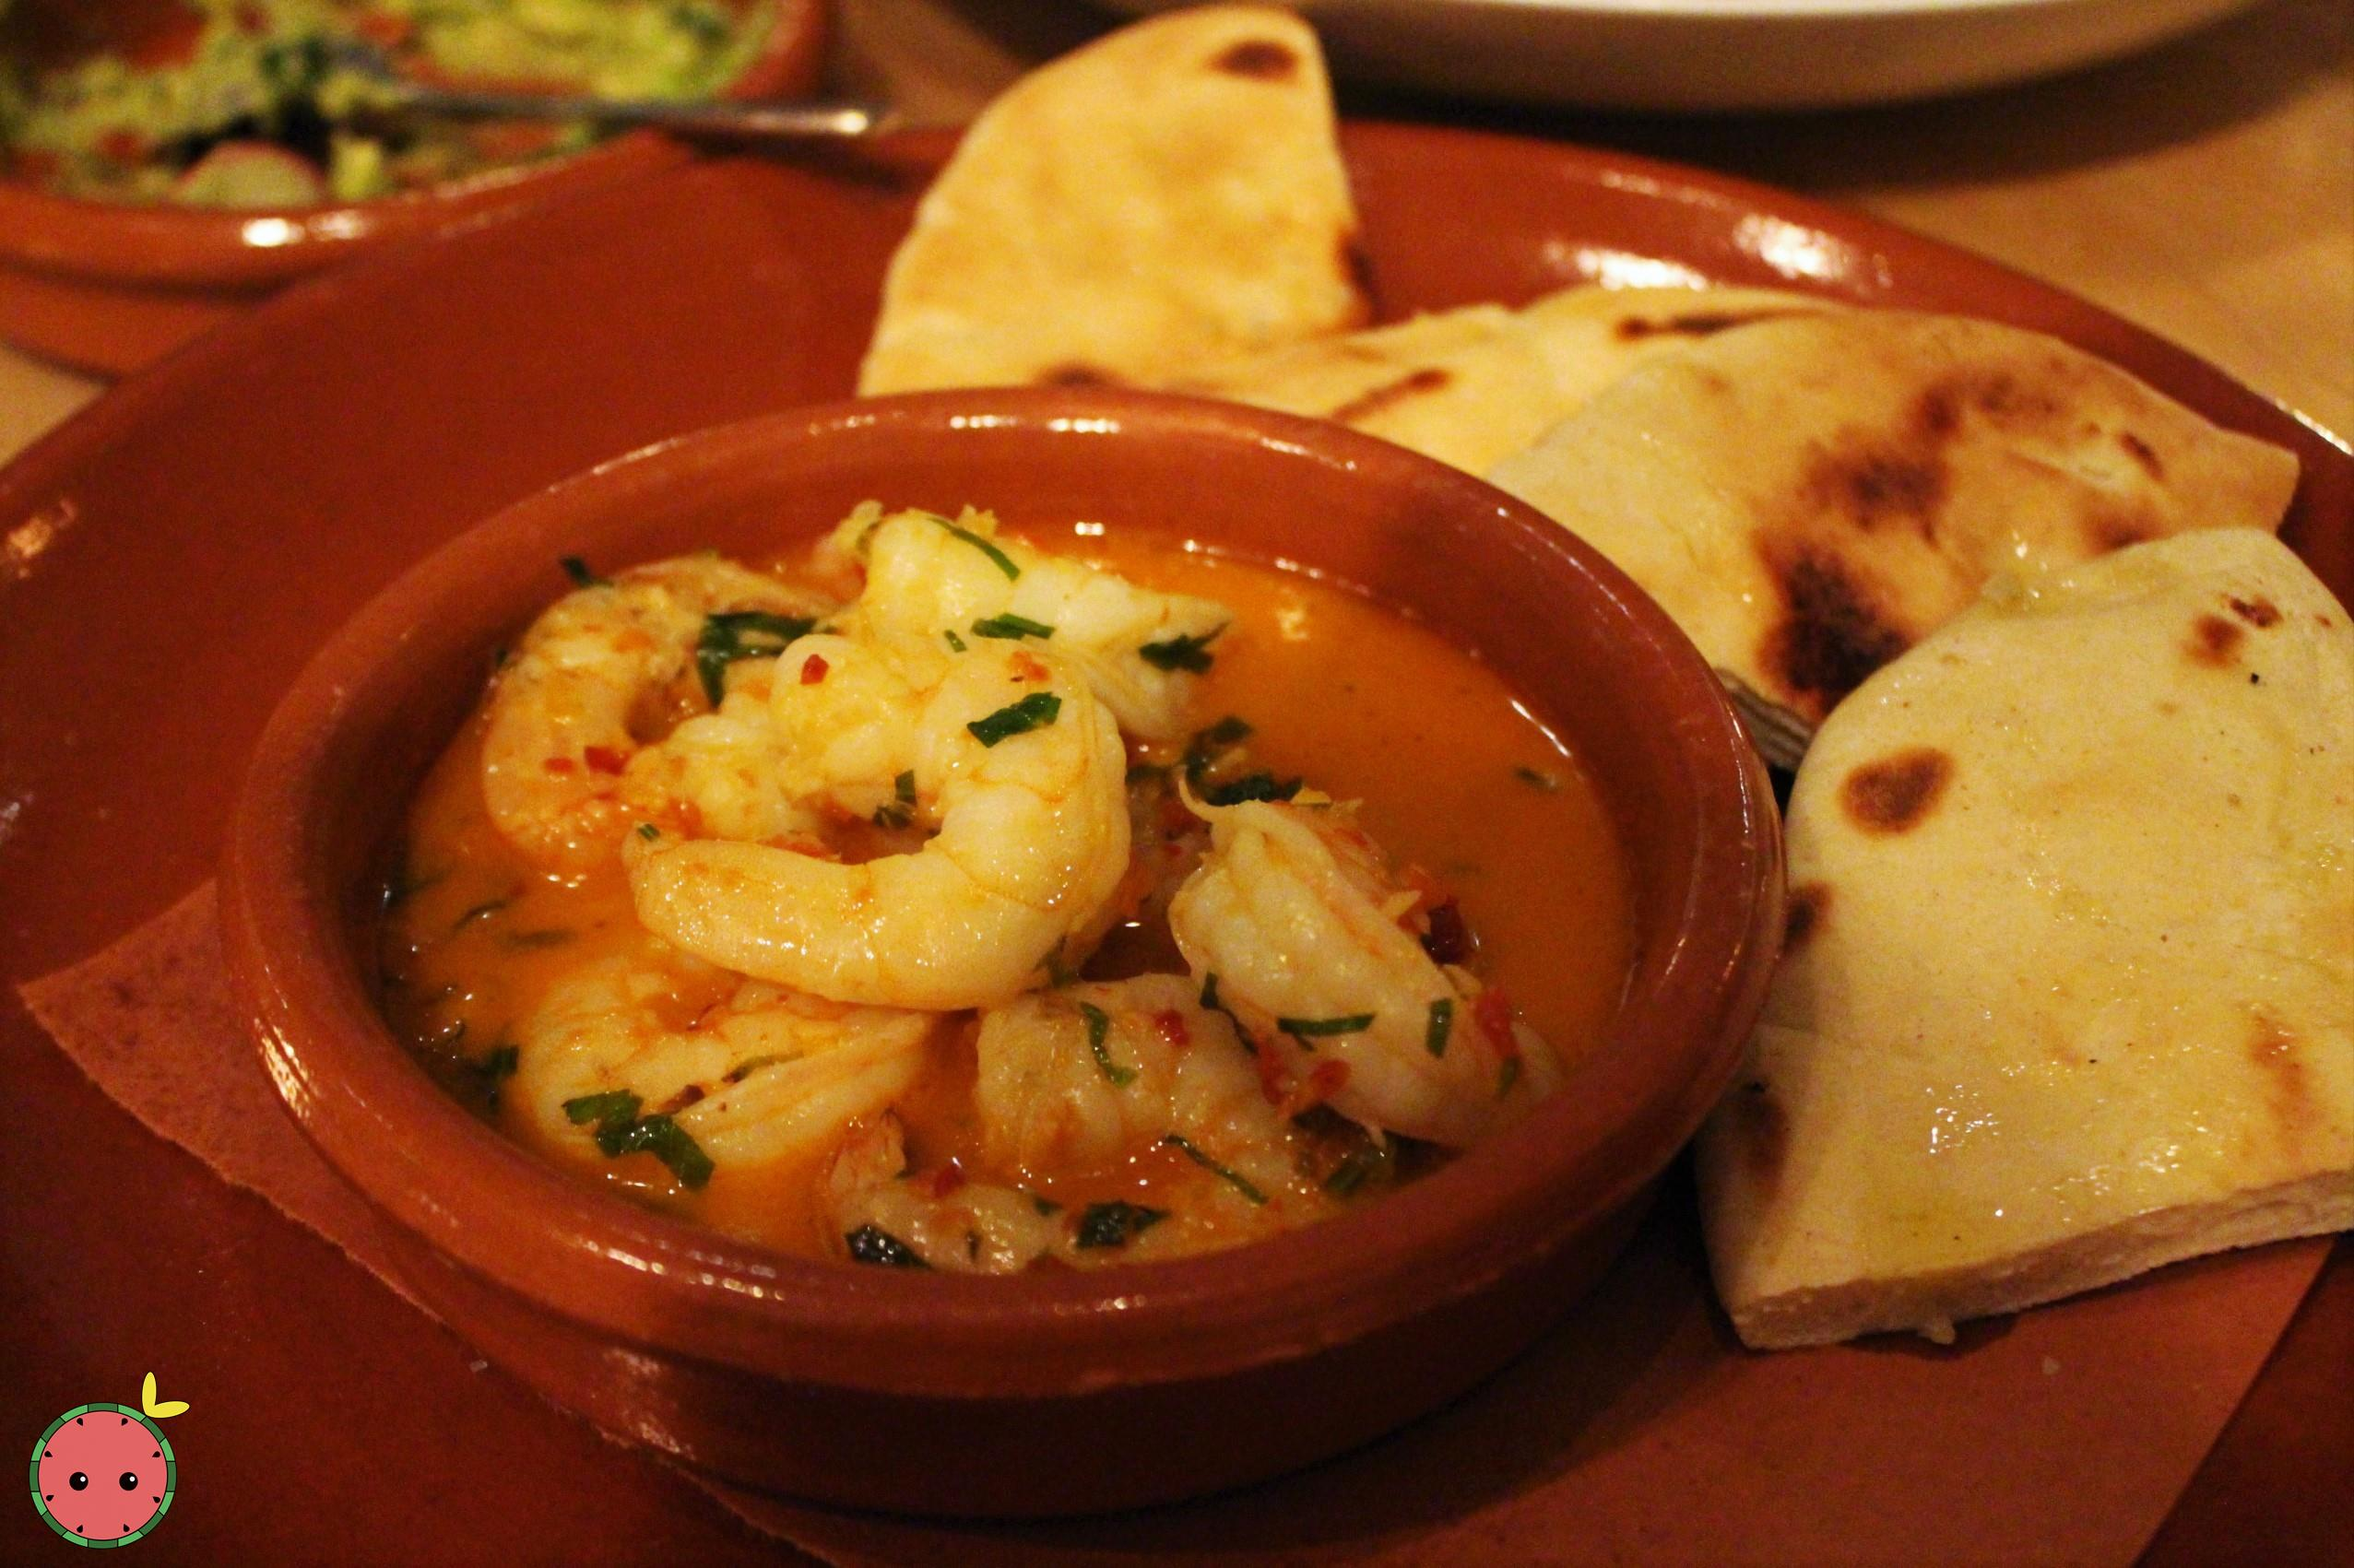 Gambas - Sautéed shrimps, garlic, chile de arbol and olive oil (with pita bread)